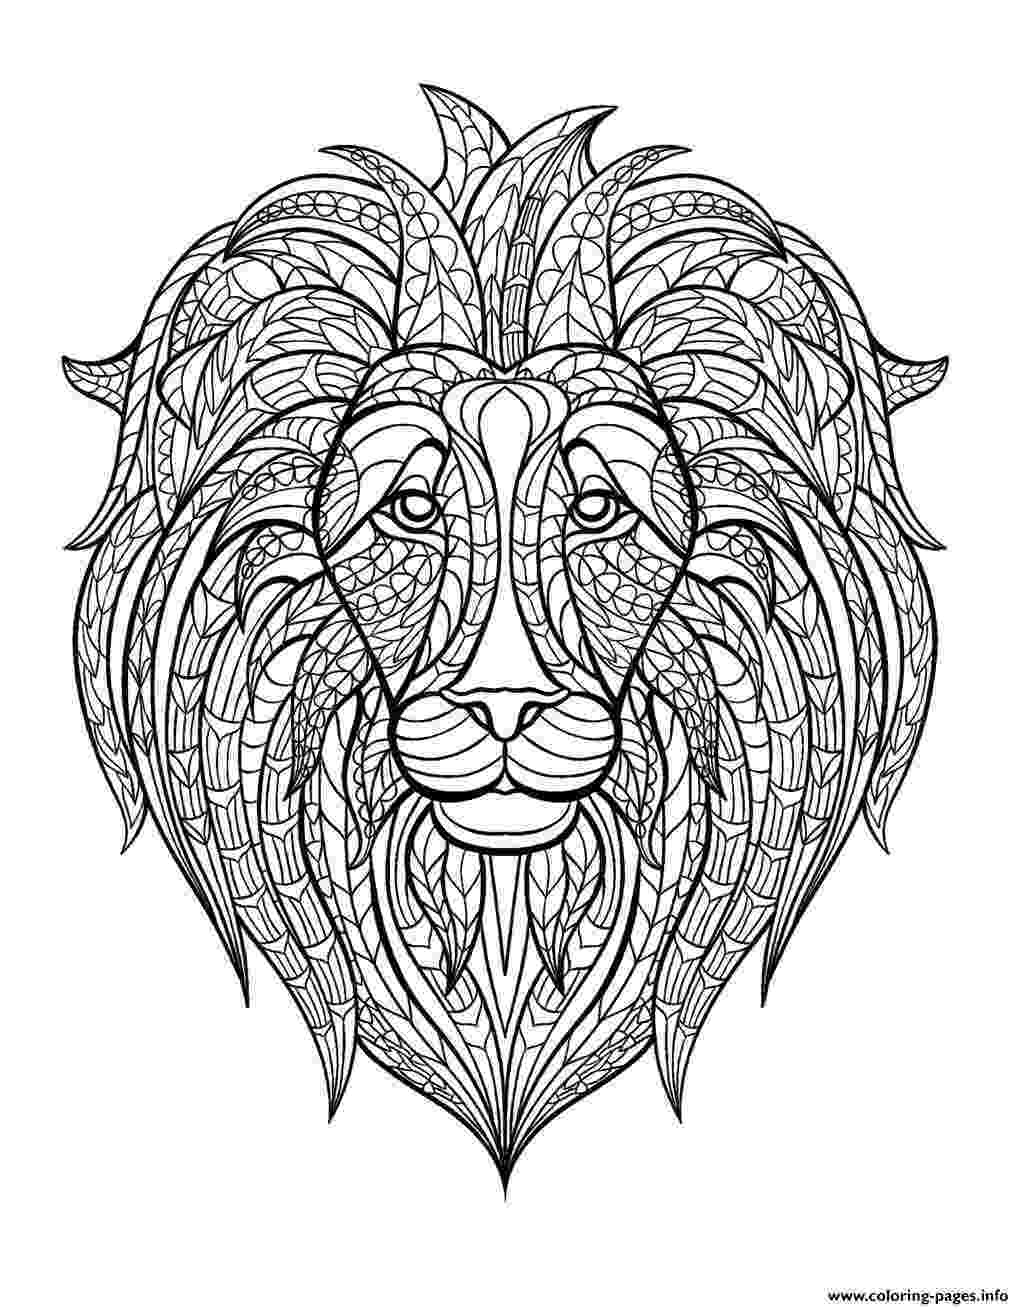 lion head coloring page coloring pages draw a lion head free coloring pages coloring head lion page